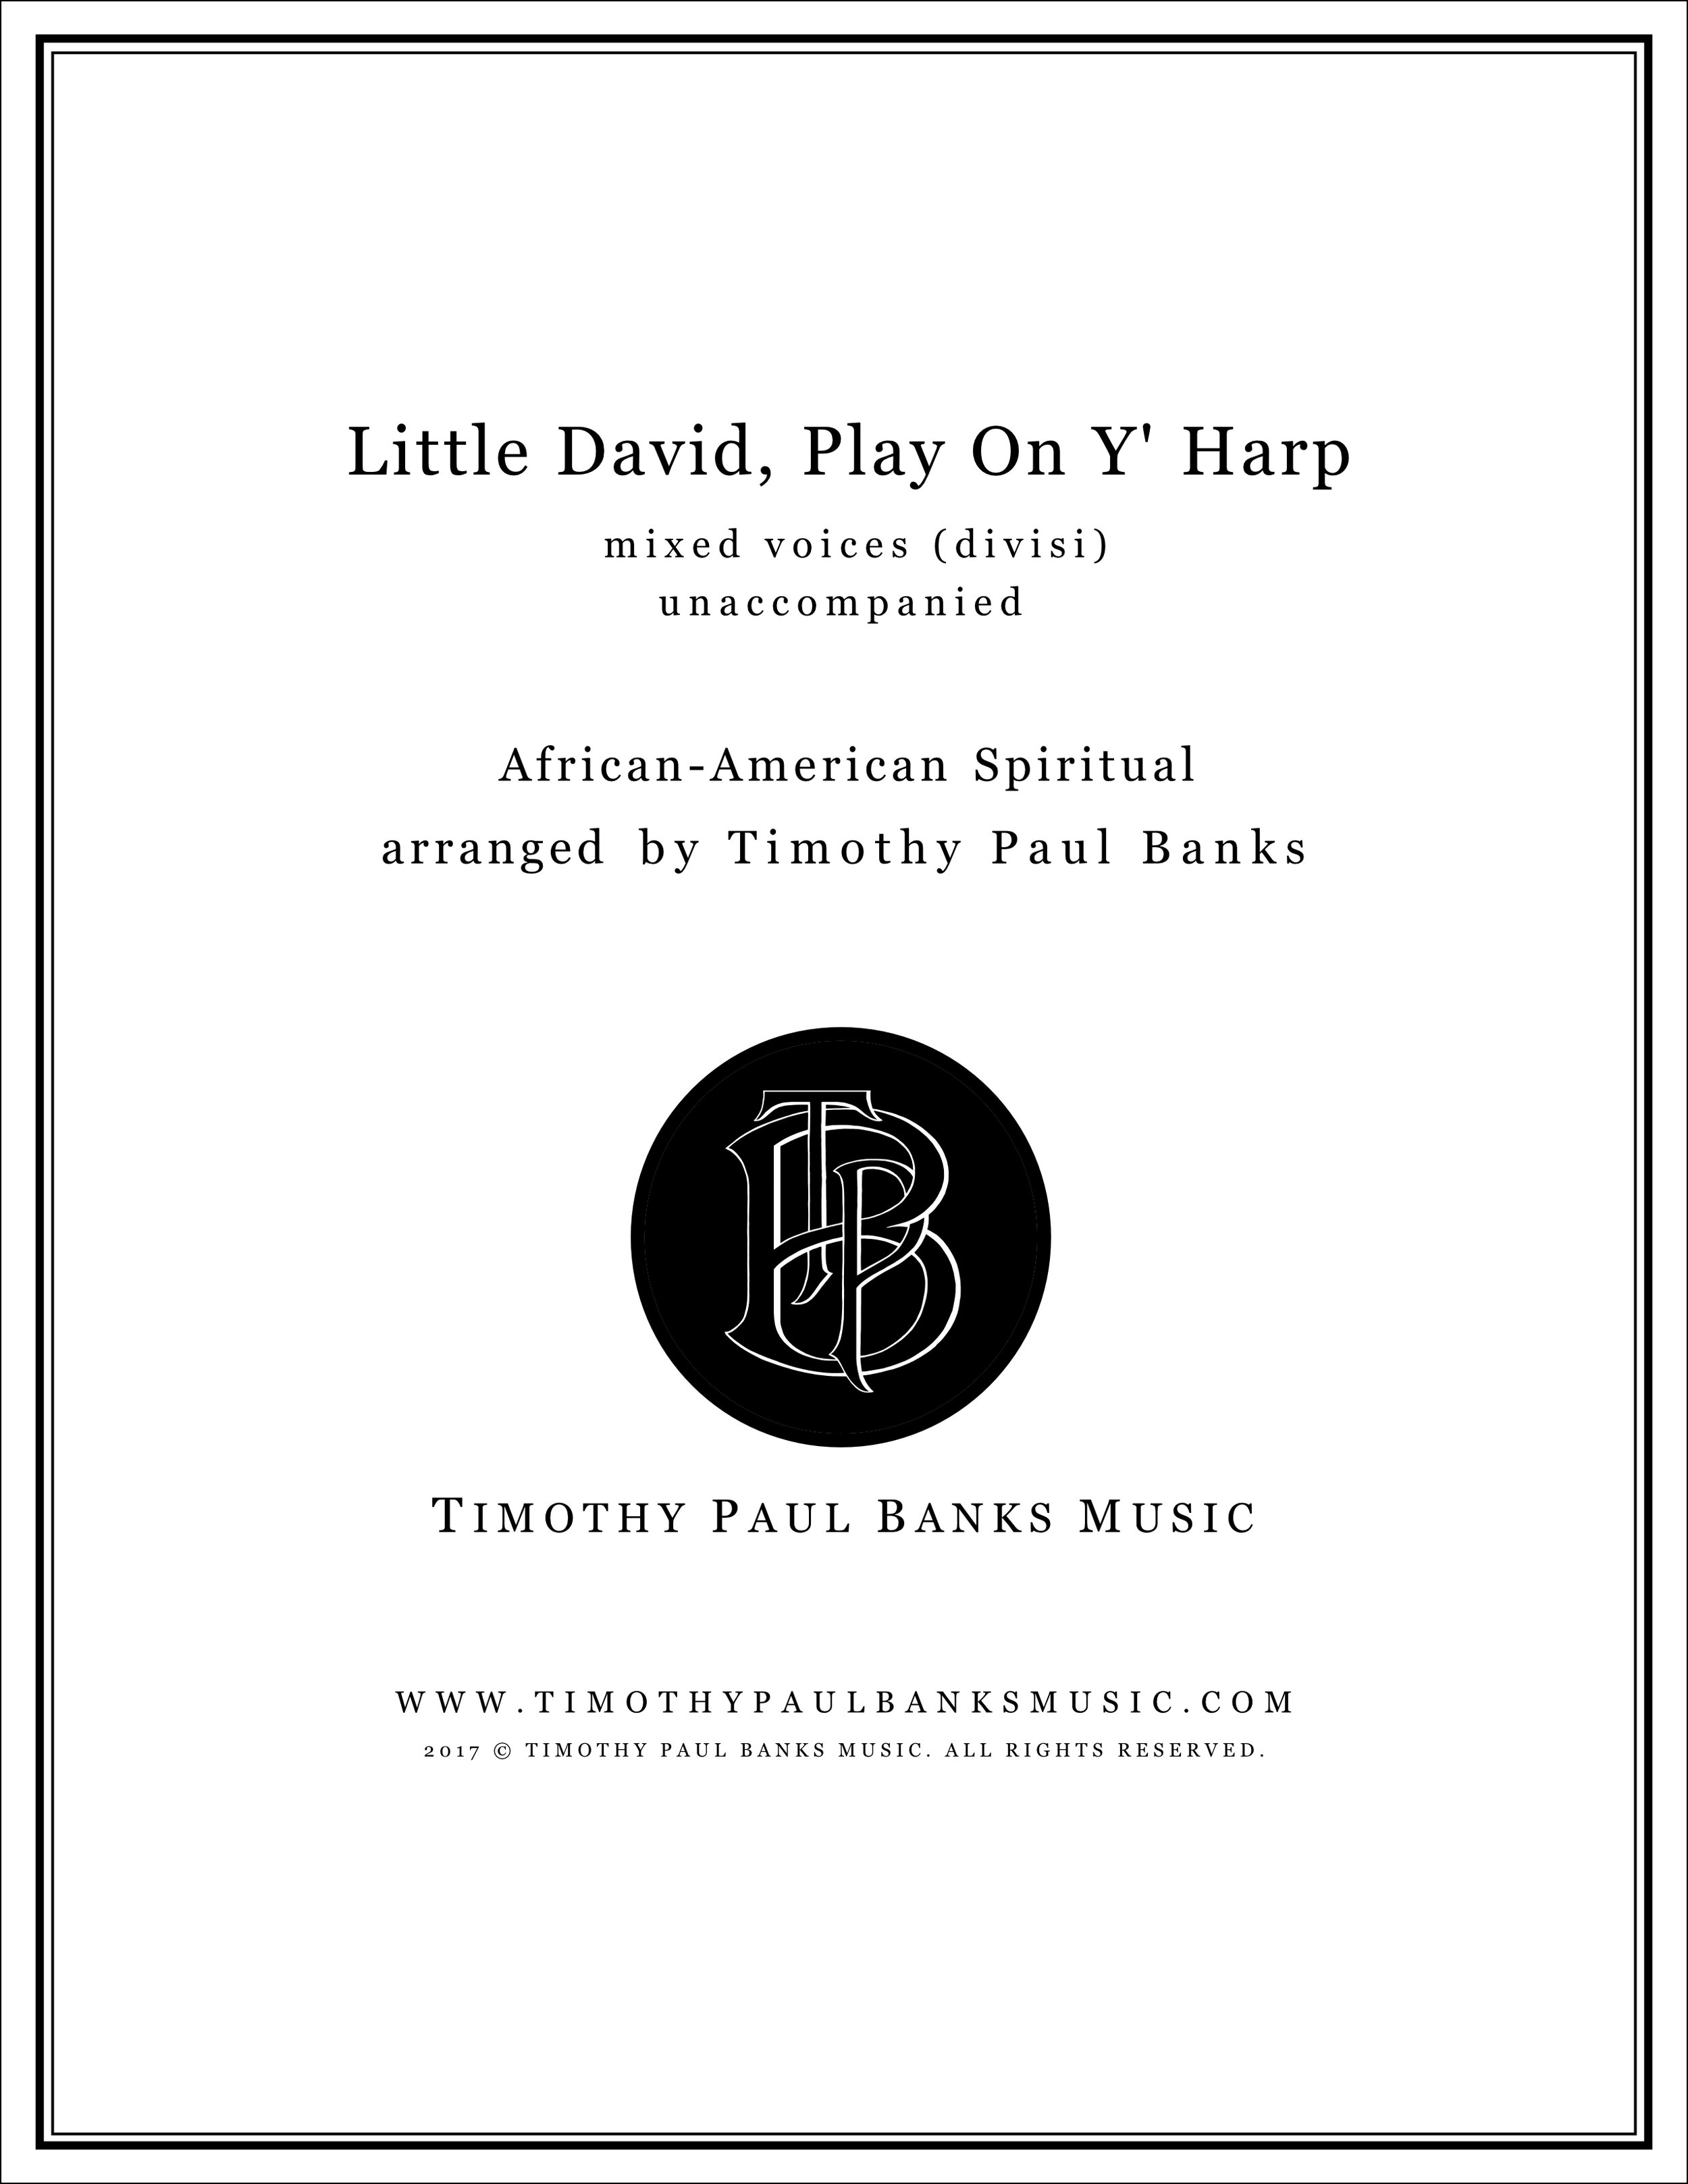 Little David, Play On Y' Harp